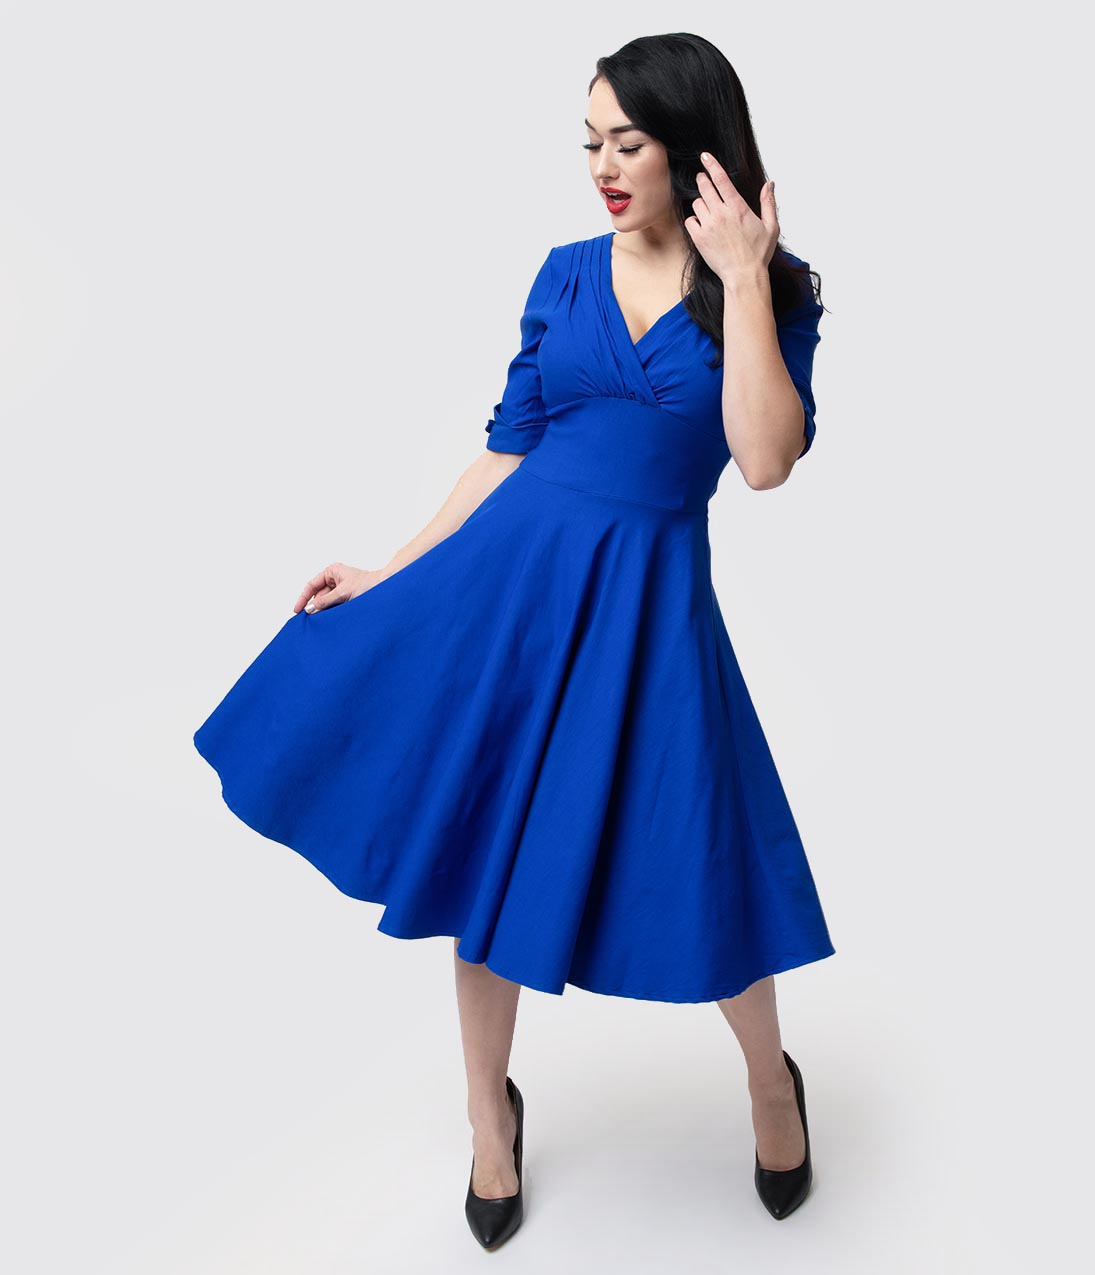 1950 Style Clothing- A Shopping Guide Unique Vintage 1950S Royal Blue Delores Swing Dress With Sleeves $88.00 AT vintagedancer.com